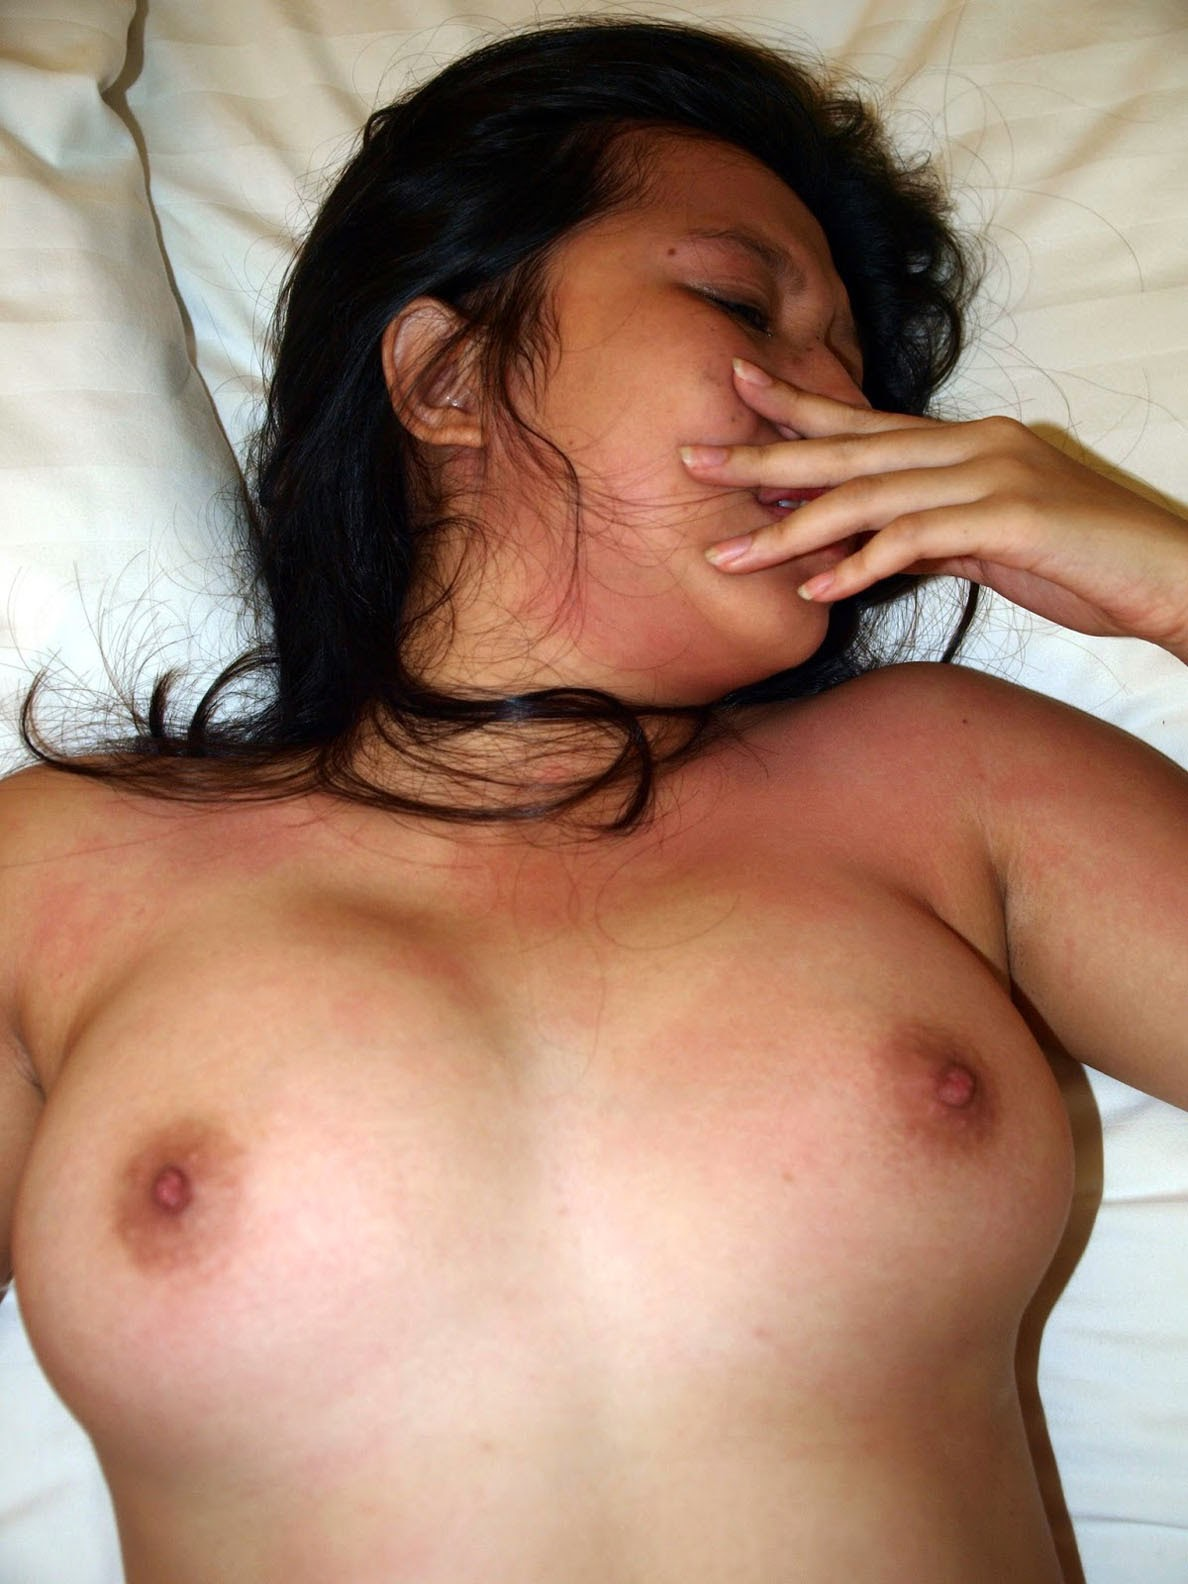 indonesian girl naked bed